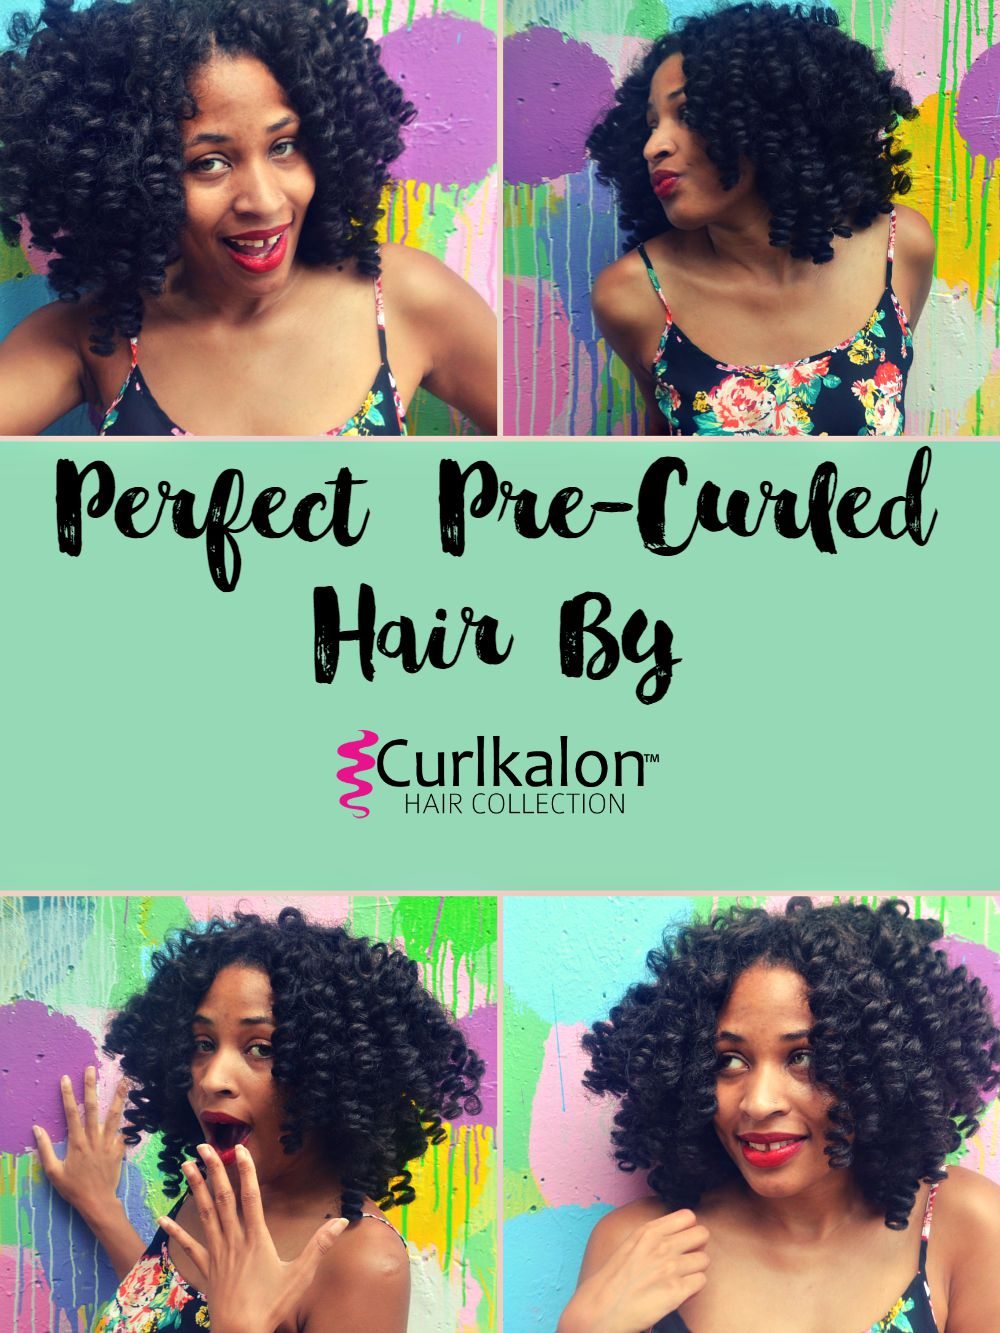 Crochet Hair Pre Curled : ... with Curlkalon Crochet Braids - Kiwi The Beauty / Kiwi The Beauty